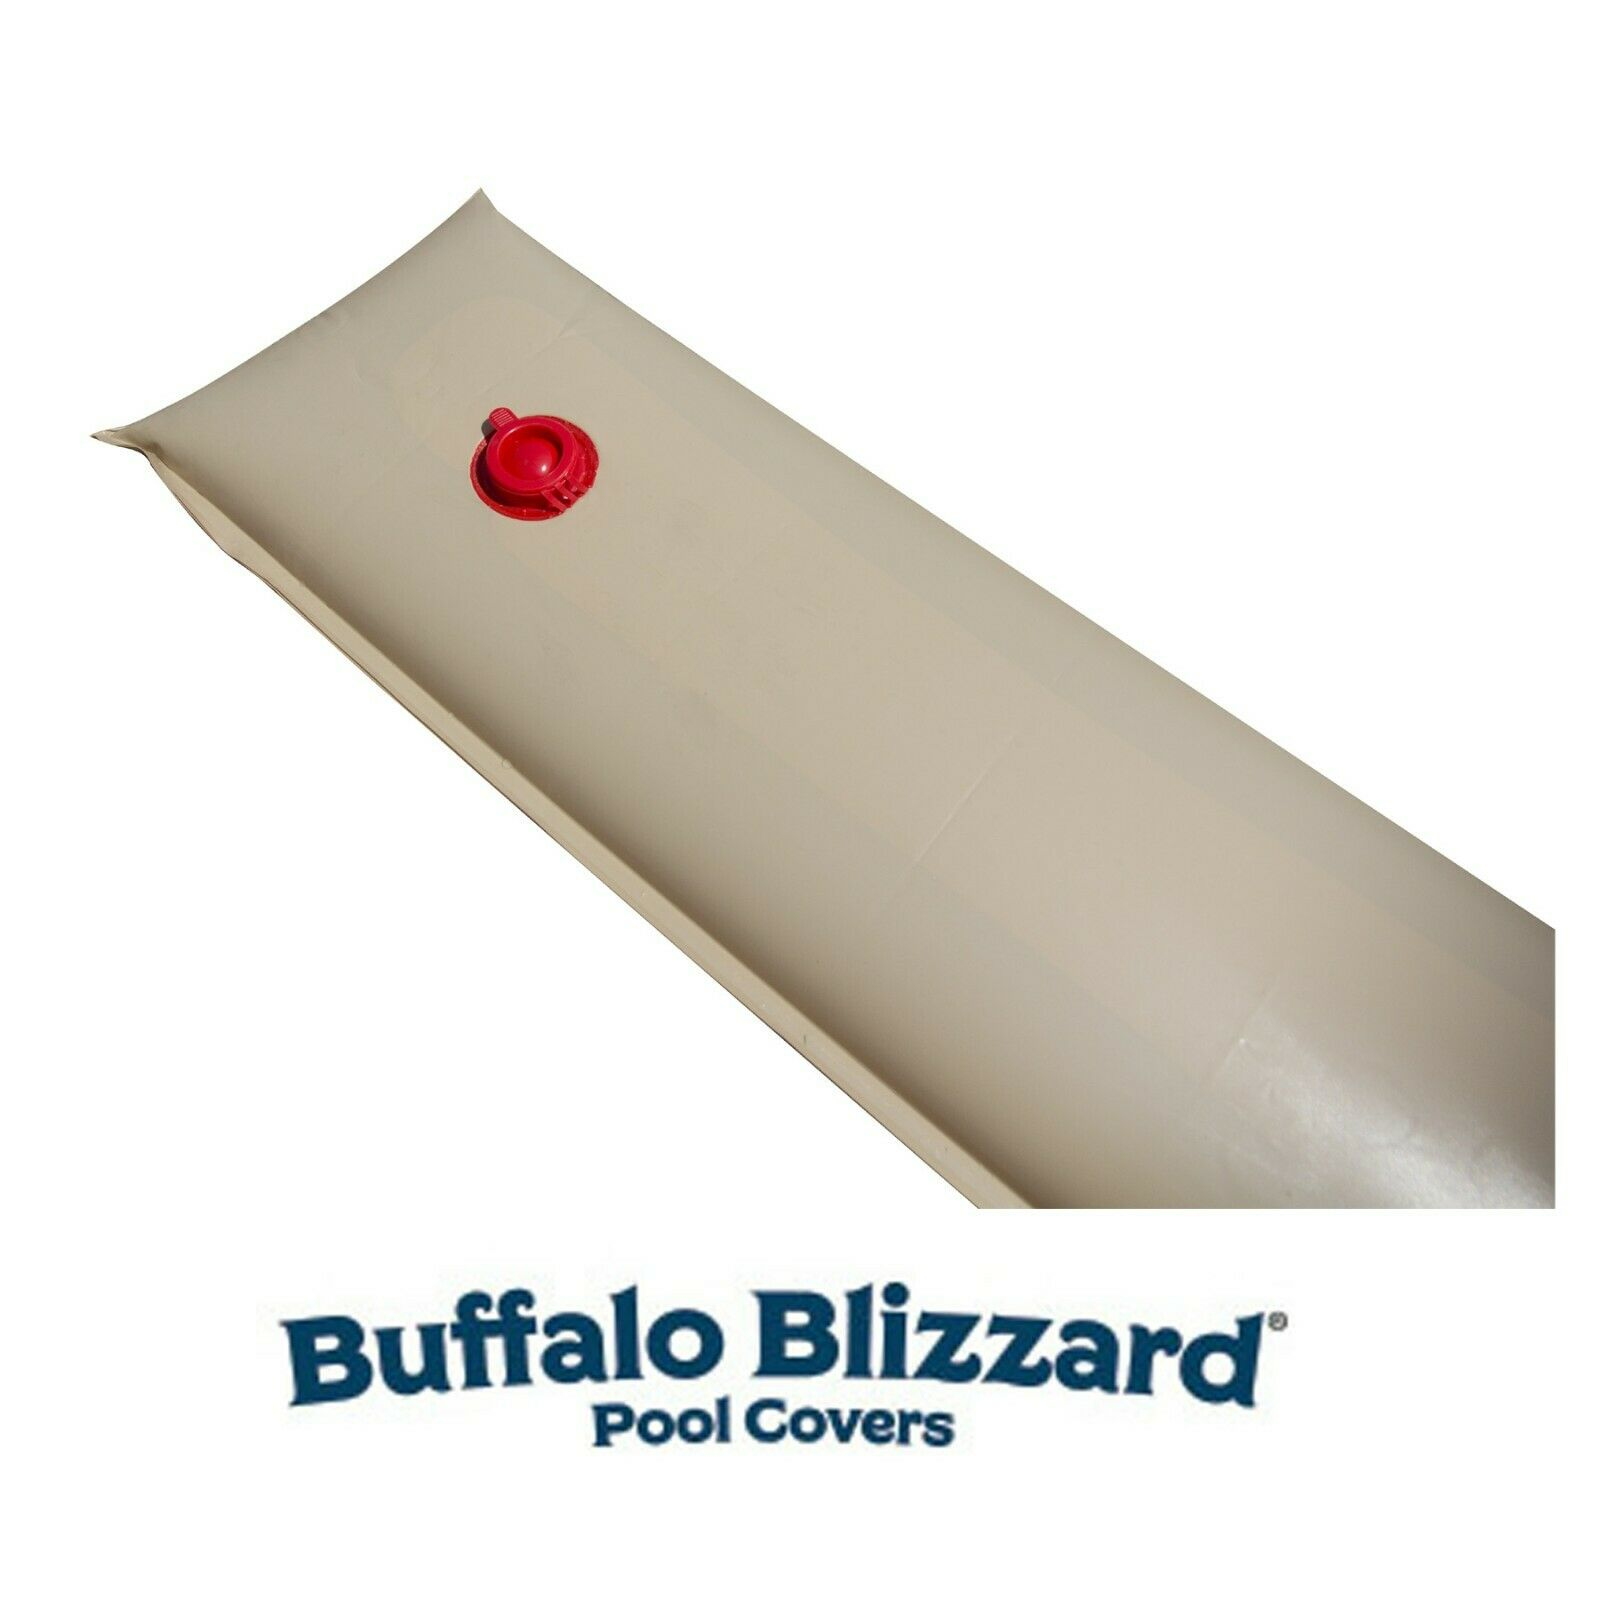 Buffalo Blizzard 1 x 8 Tan Water Tubes 22 Gauge For Swimming Pool Winter Covers